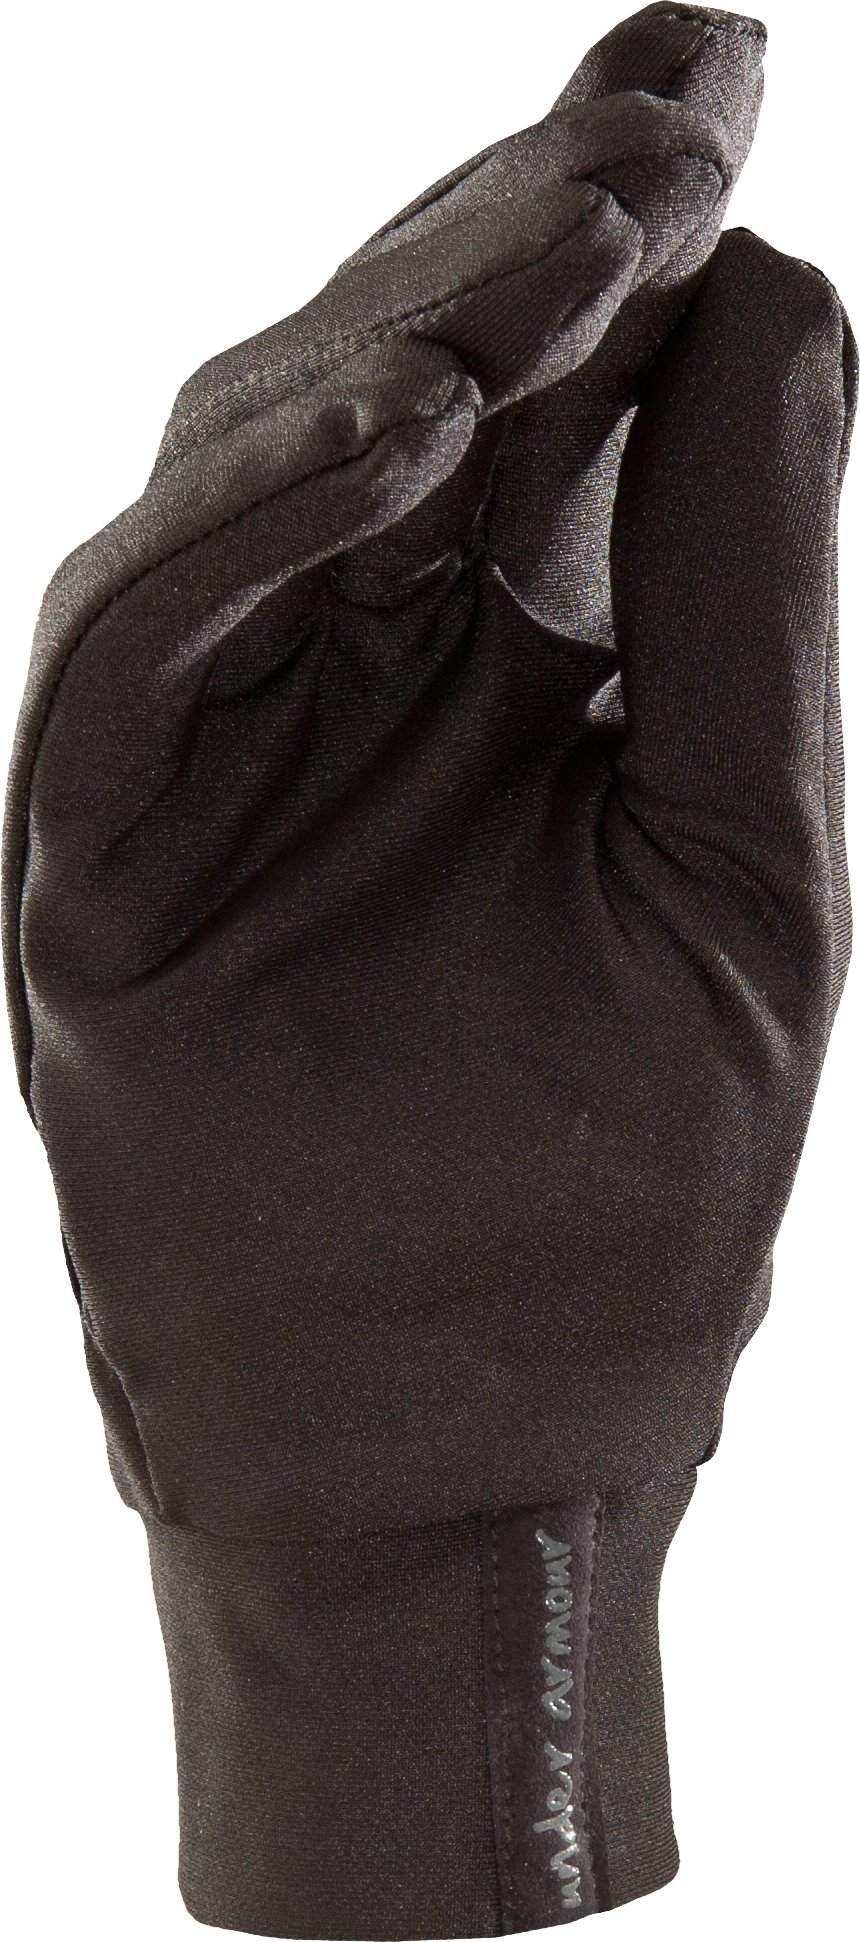 Women's Liner Gloves, Black , undefined